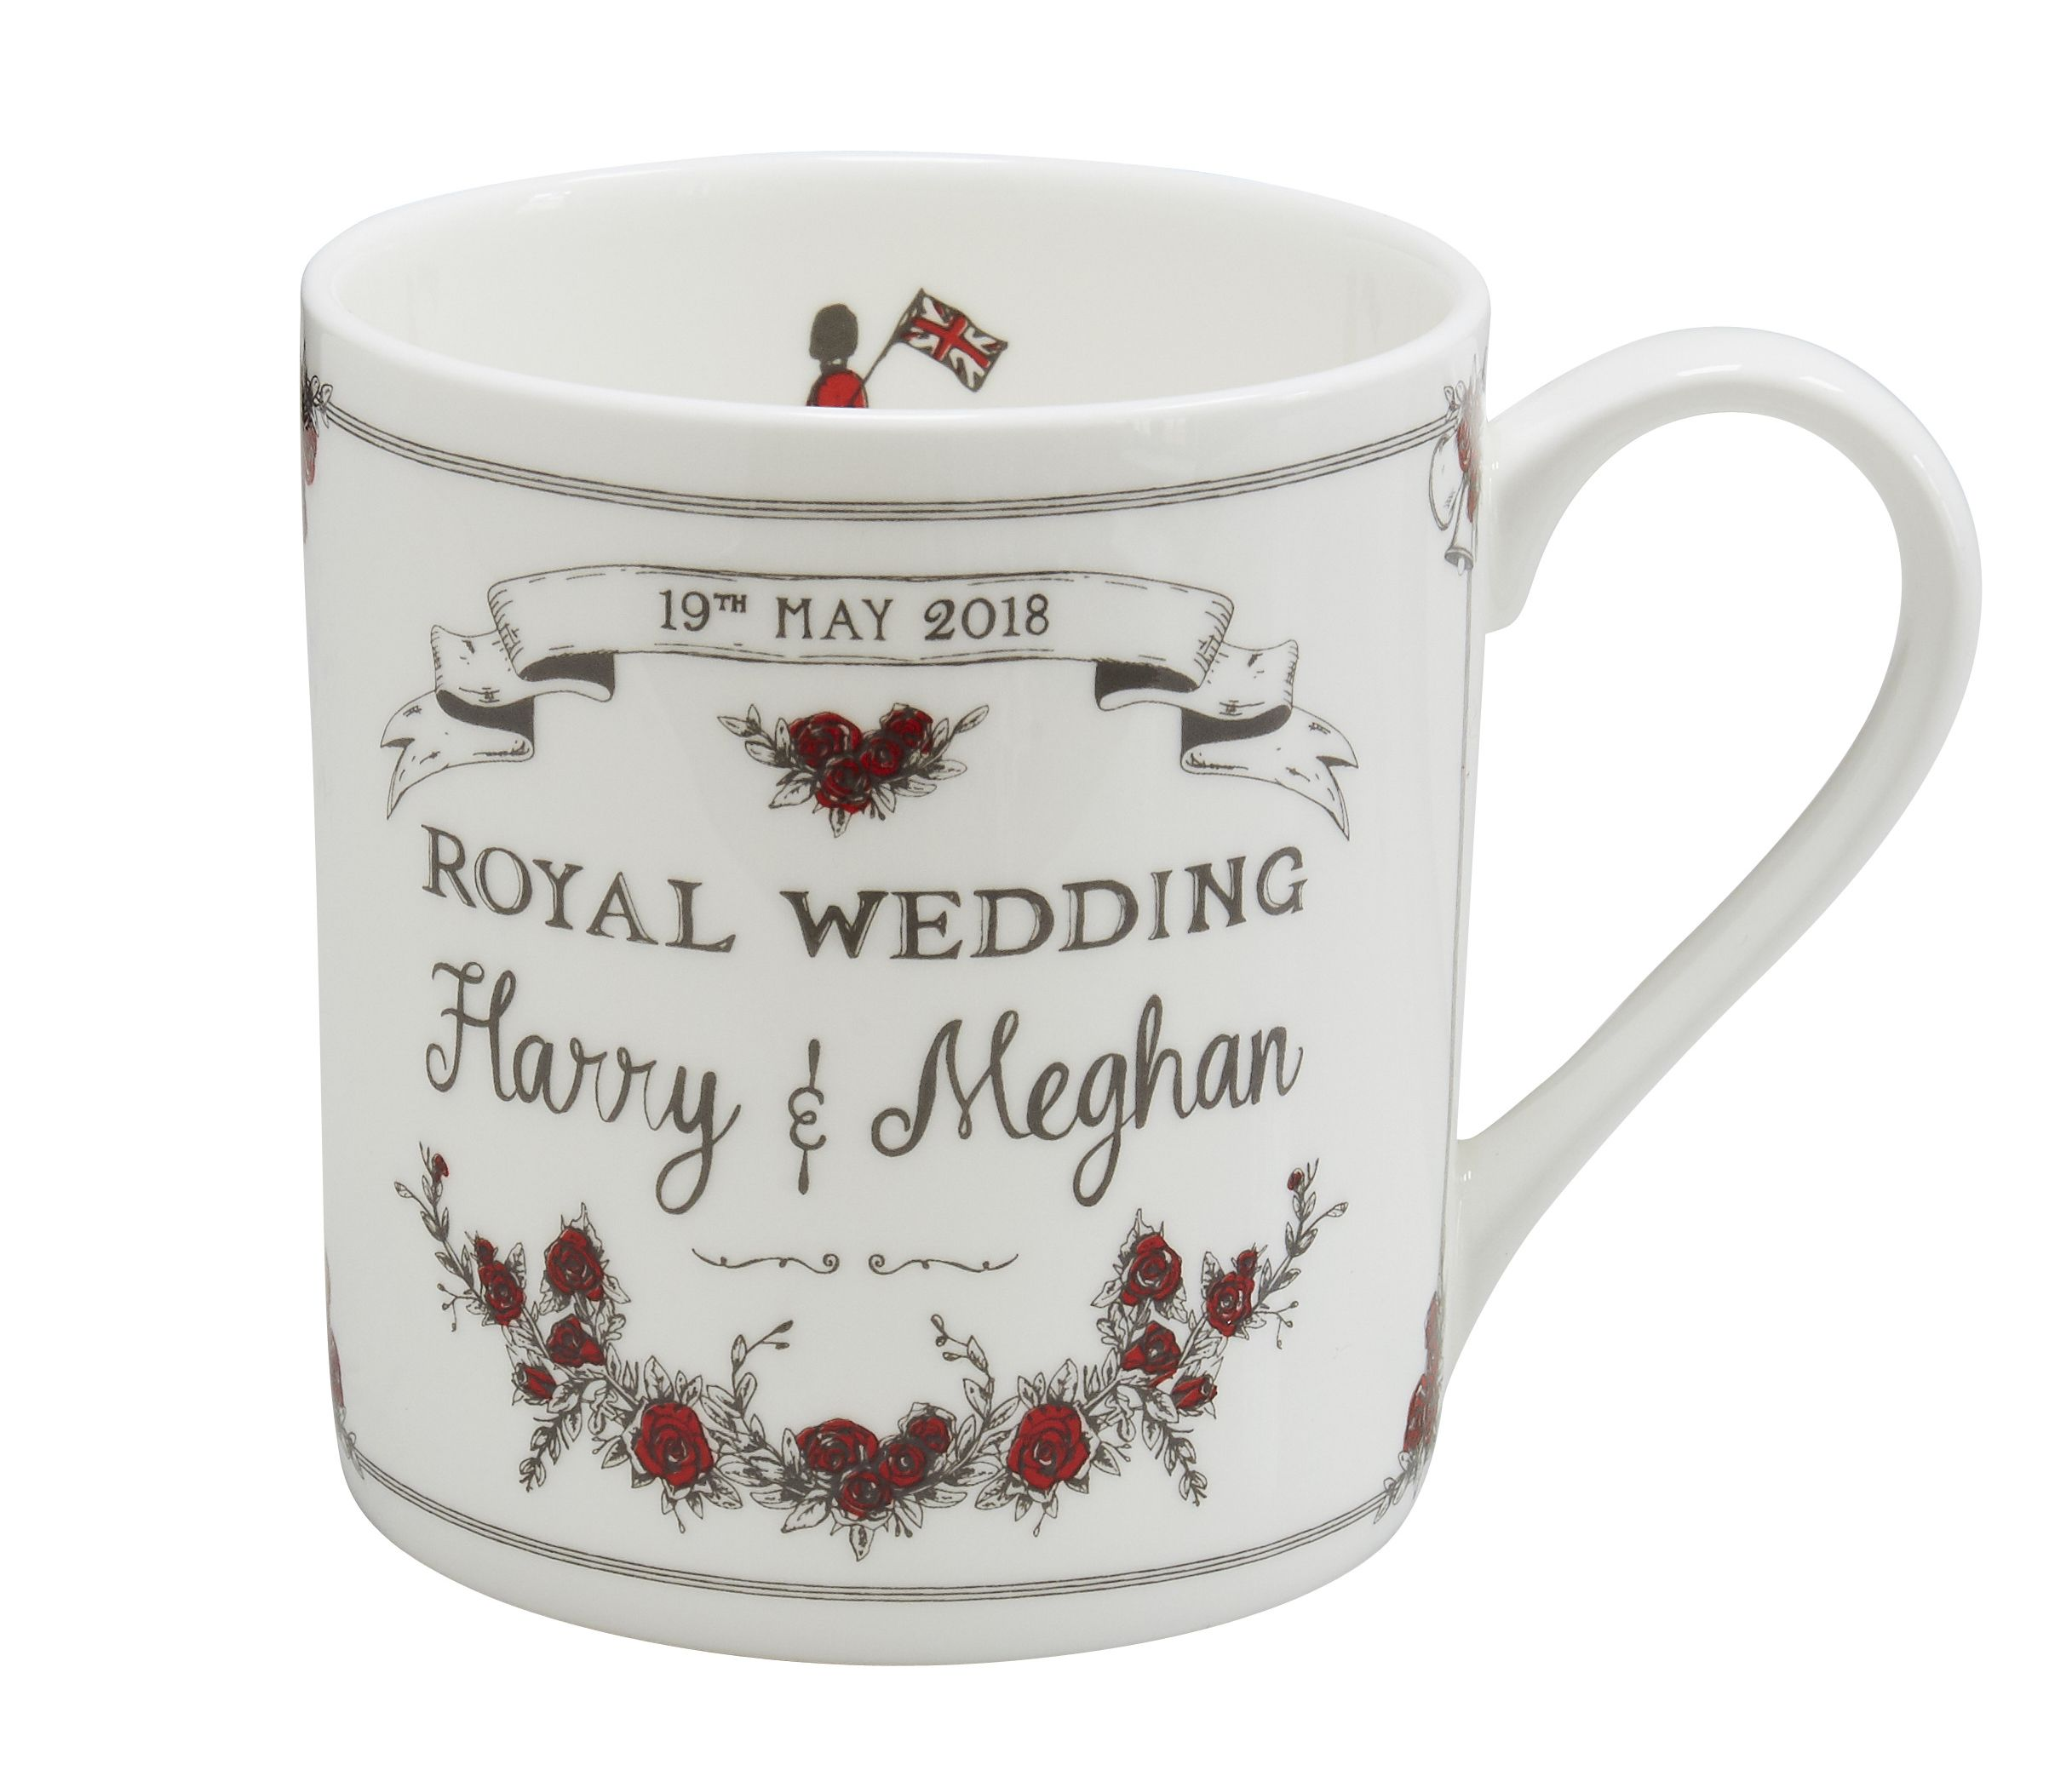 Harry and Meghan Mug - Victoria Eggs - Etsy